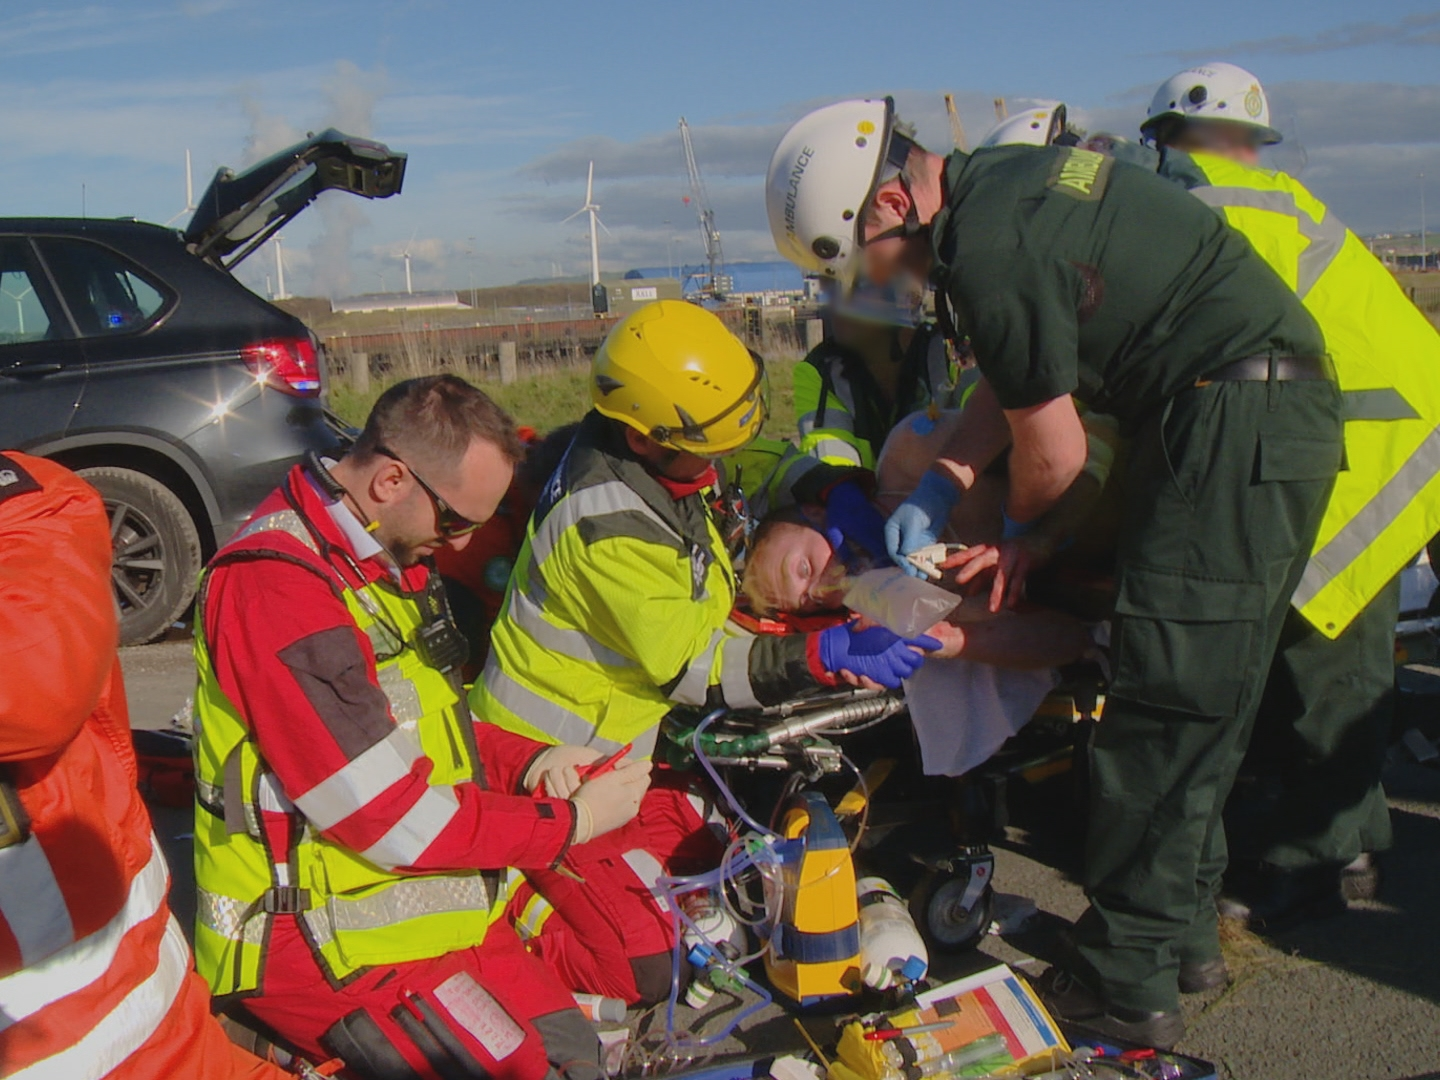 Medics attend to Richard Stephenson at the scene